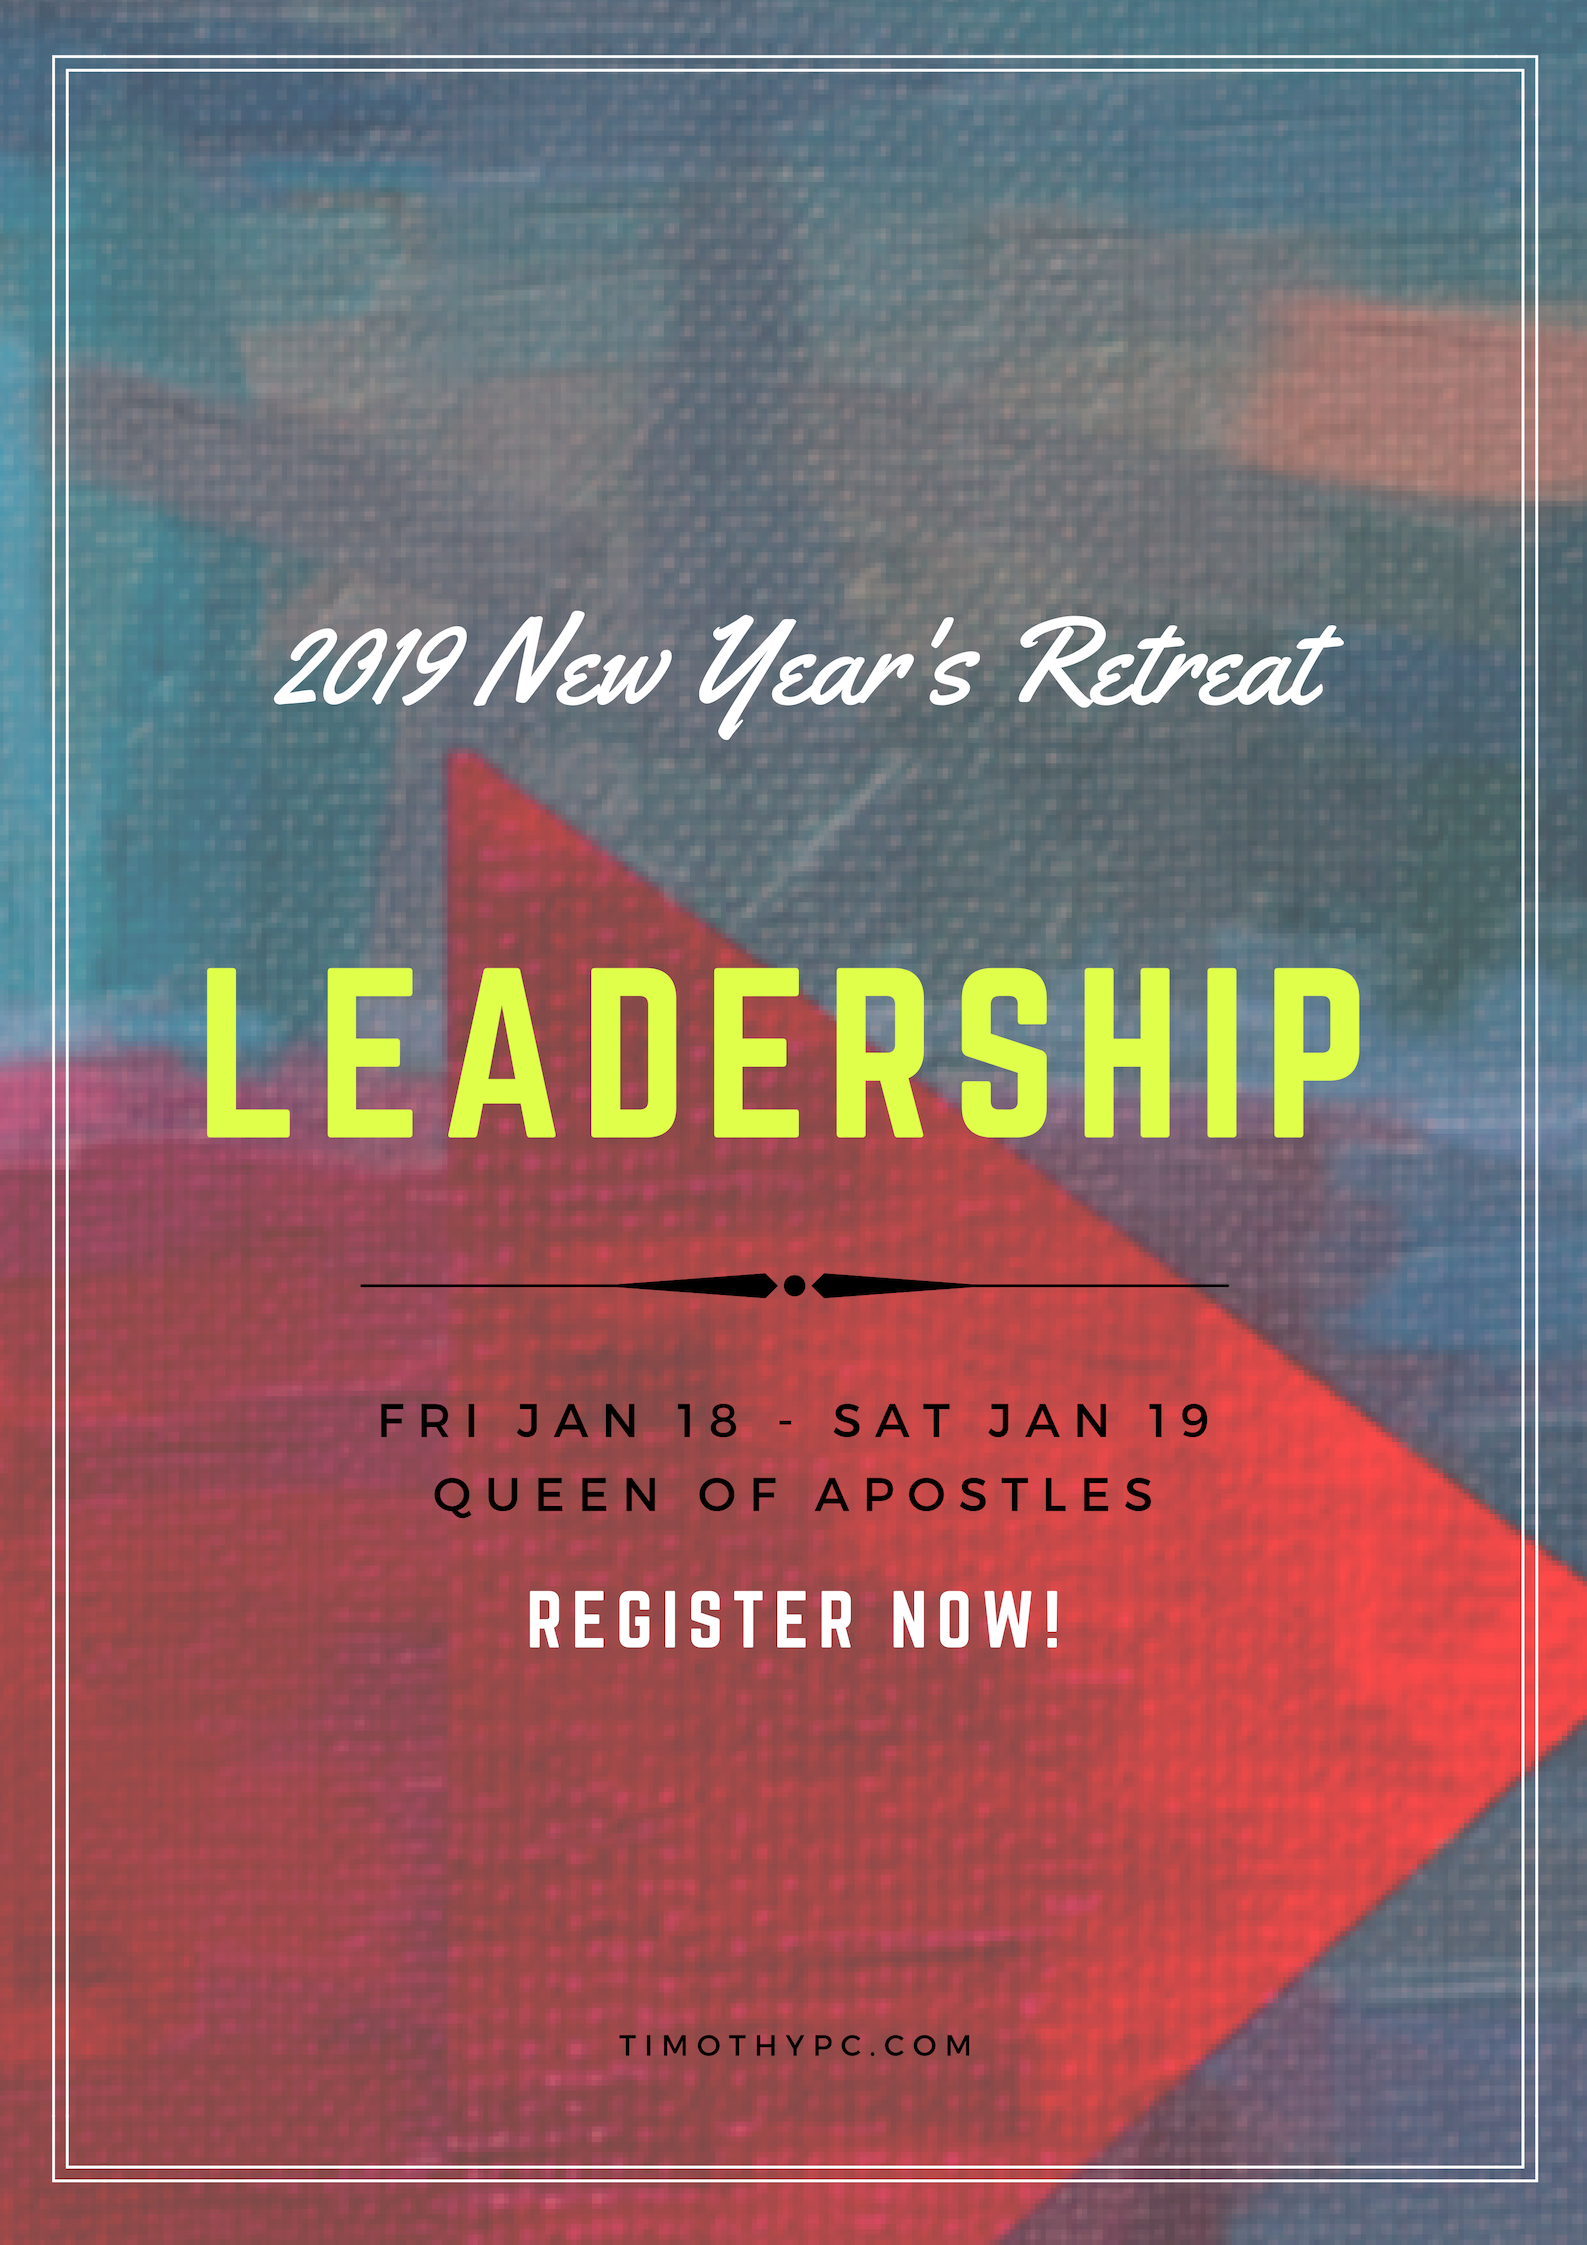 St. Timothy New Year Retreat 2019